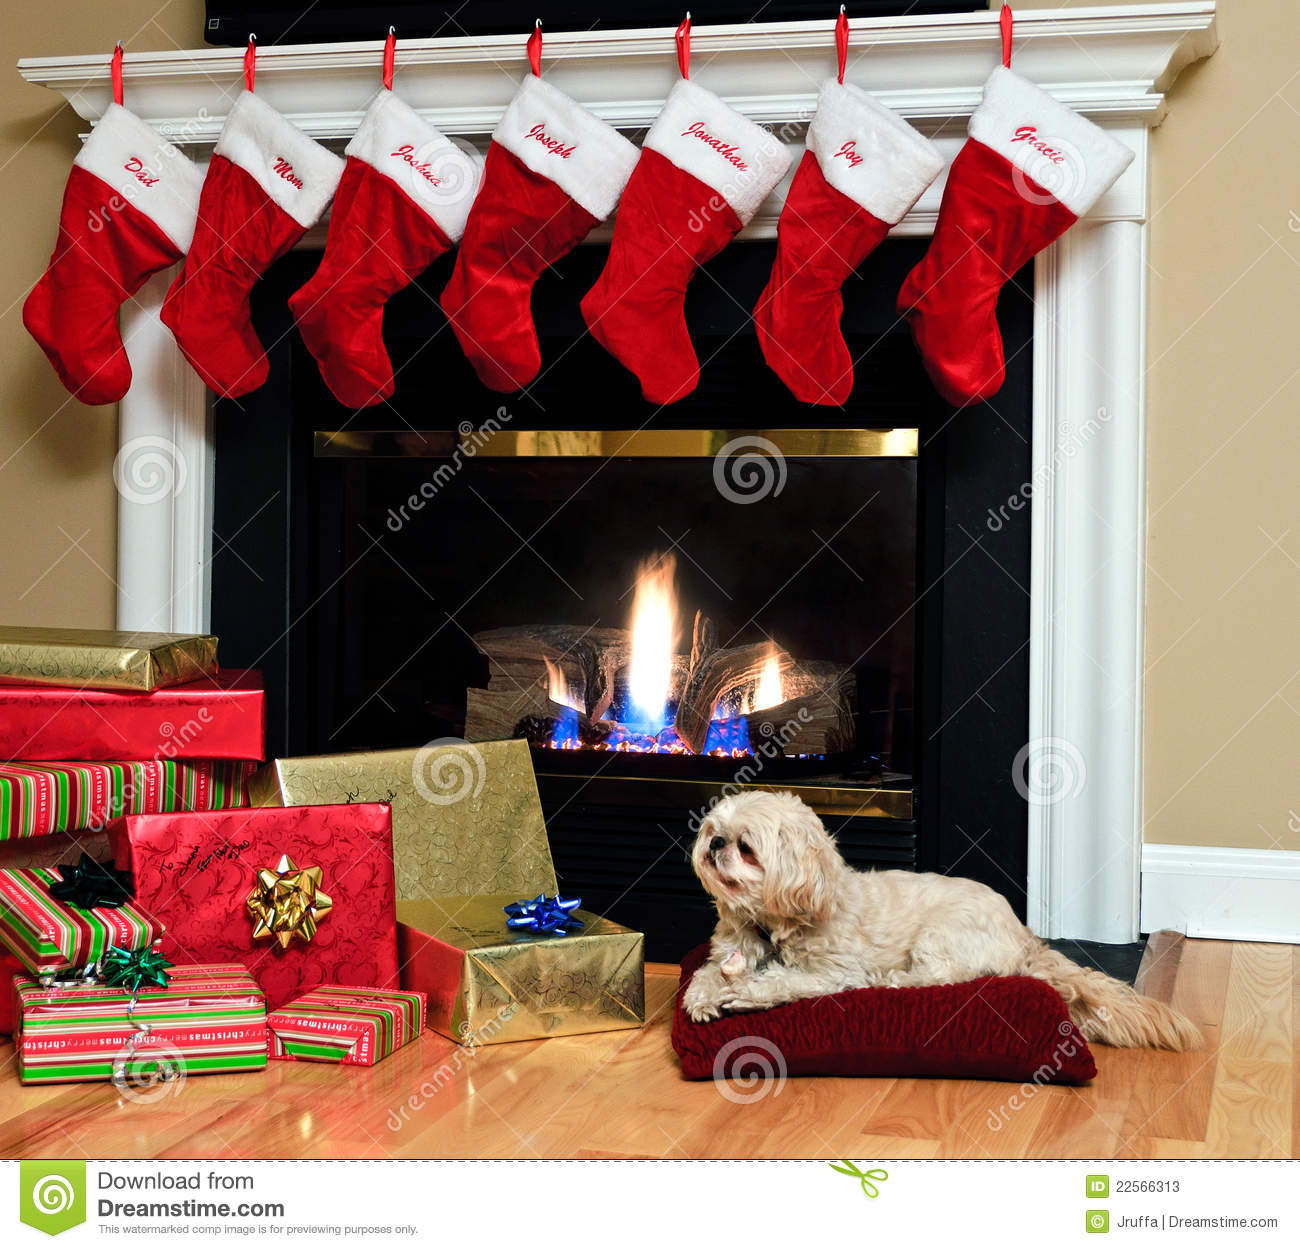 Christmas Stockings By The Fireplace Stock Photos - Image: 22566313